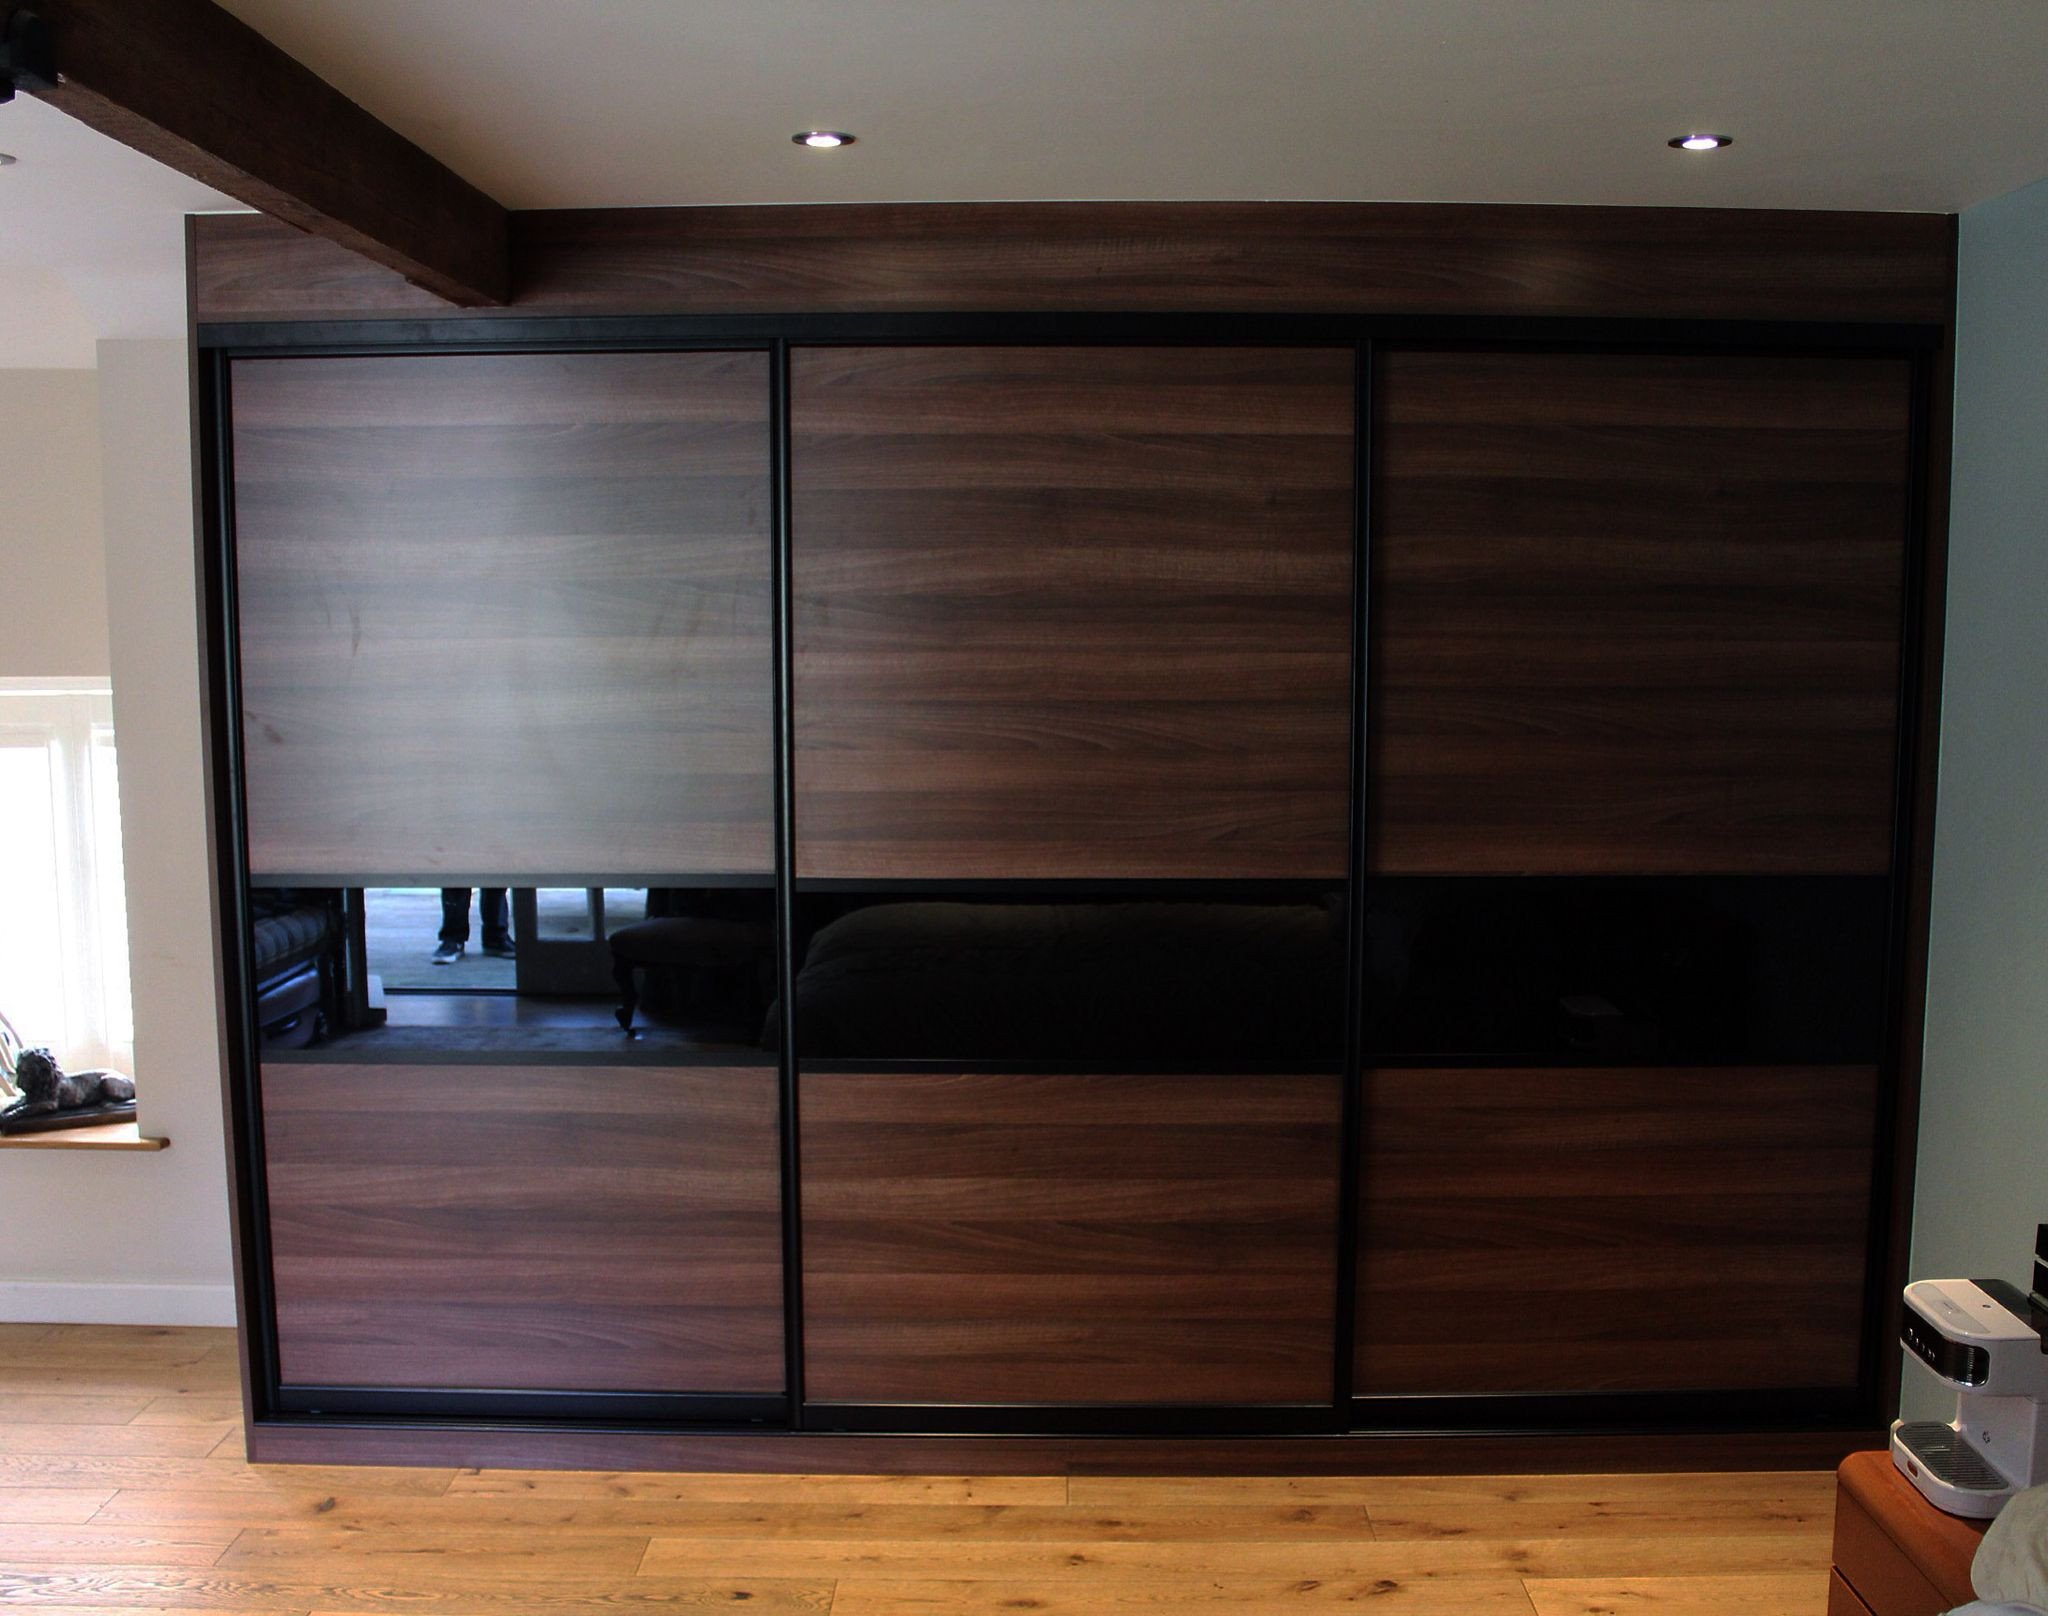 Sliding Doors for Bedroom Fresh Just Installed A Beautiful Walnut and Black Glass Bedroom